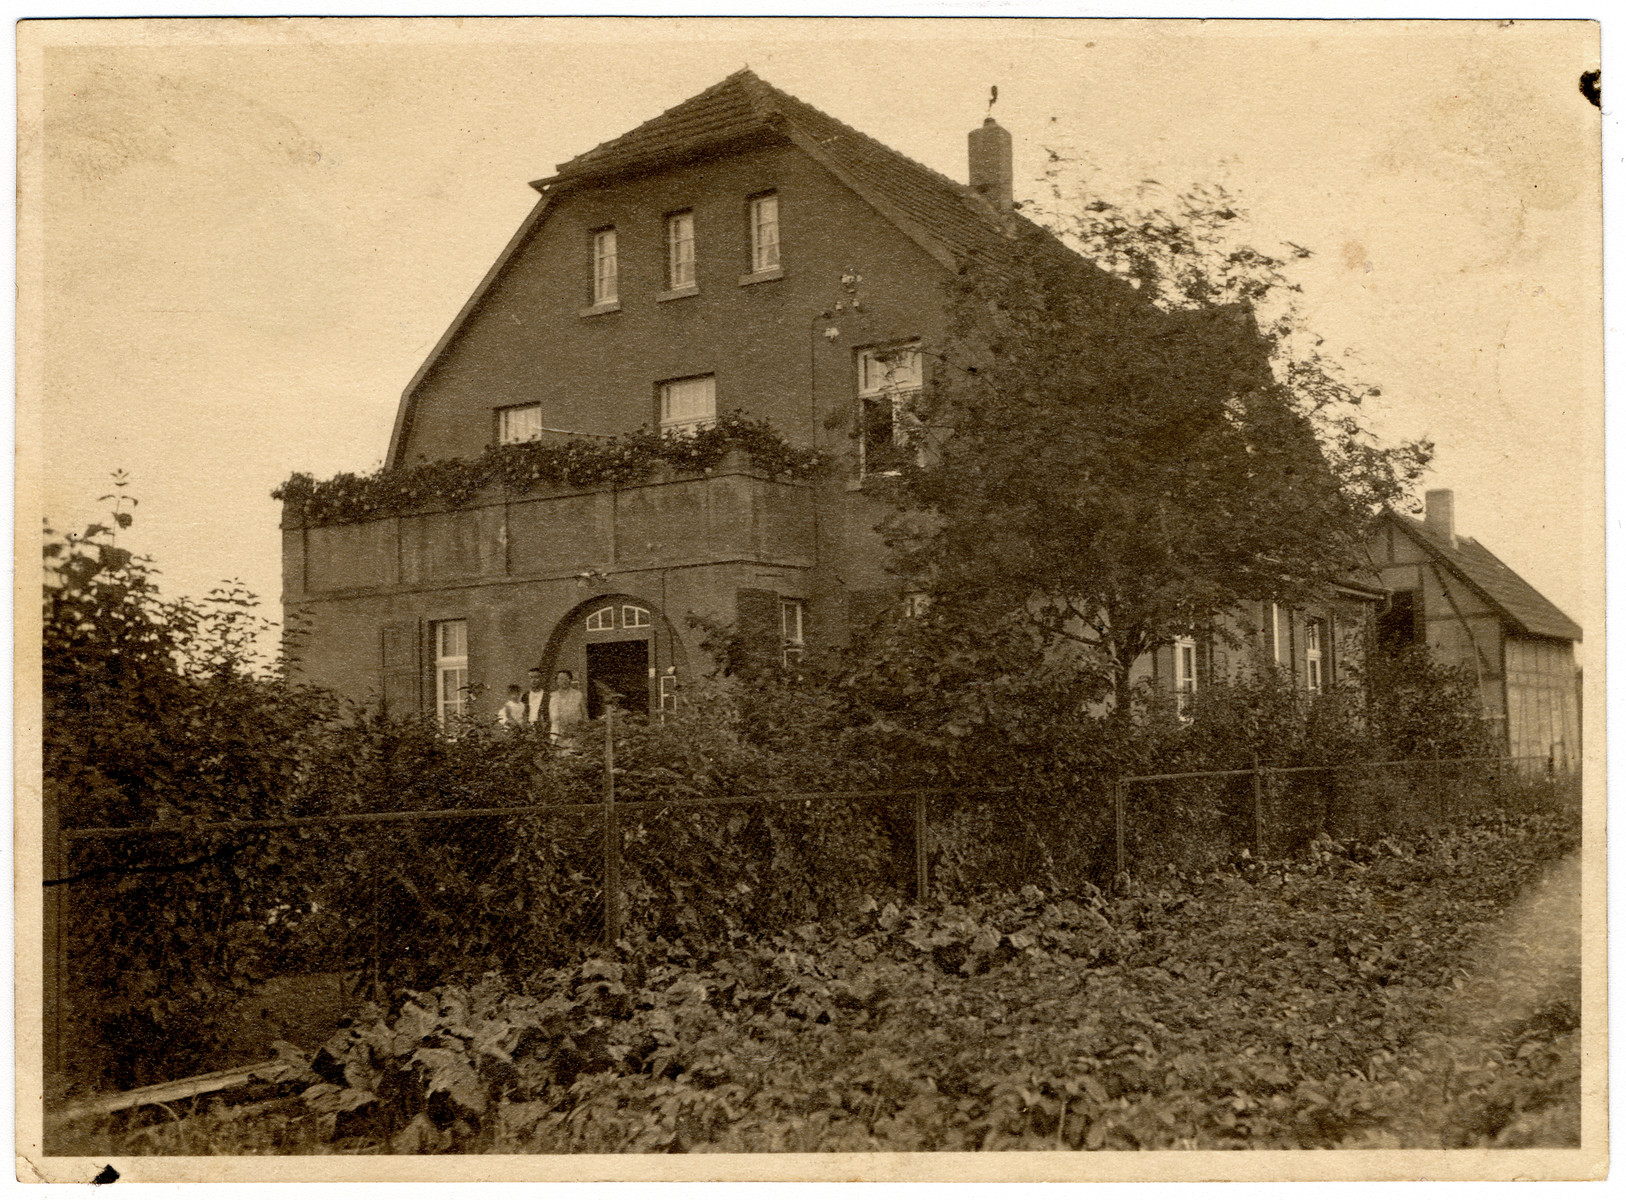 View of the Wertheim home in Brakel, Germany.  Erich, Margarete and Martin Wertheim are standing by the entrance.